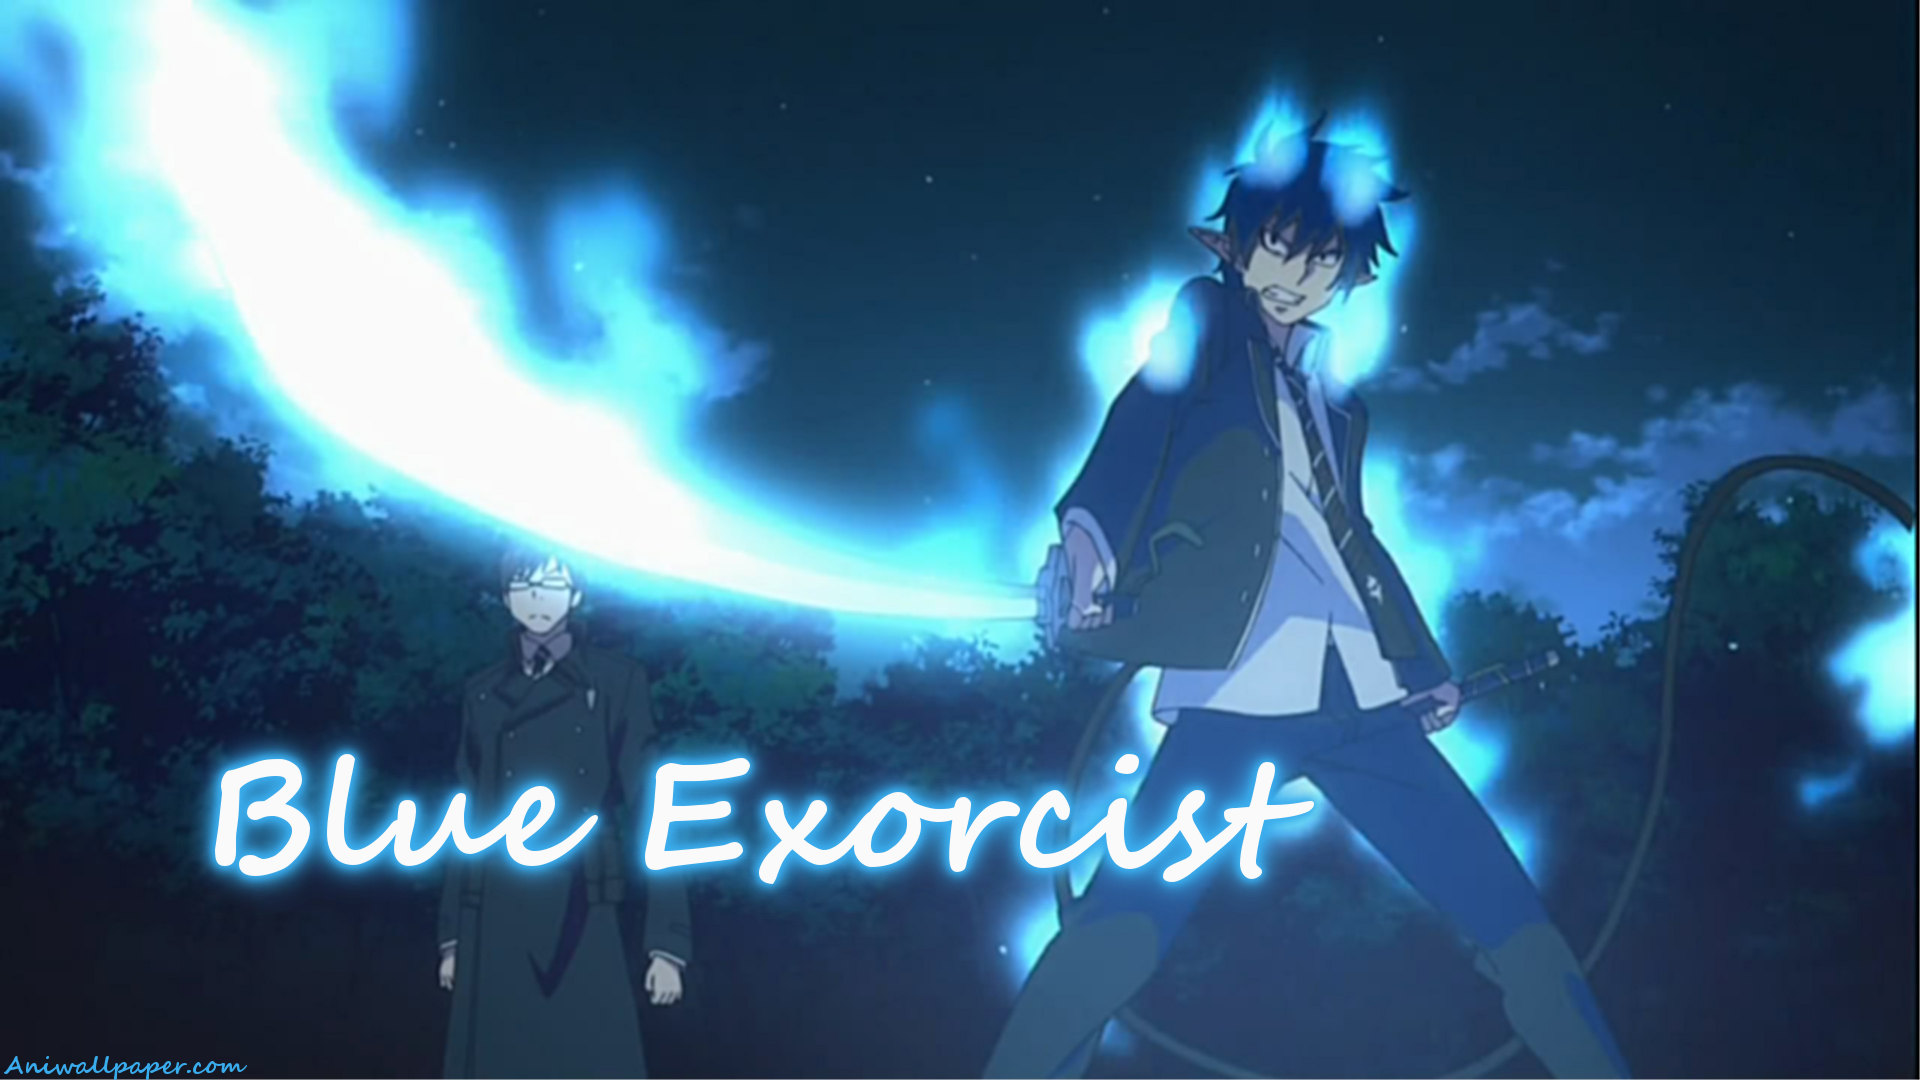 Fight Club Movie Quotes Wallpaper Blue Exorcist Rin And Yukio Okumura Fullhd 1920 215 1080 June